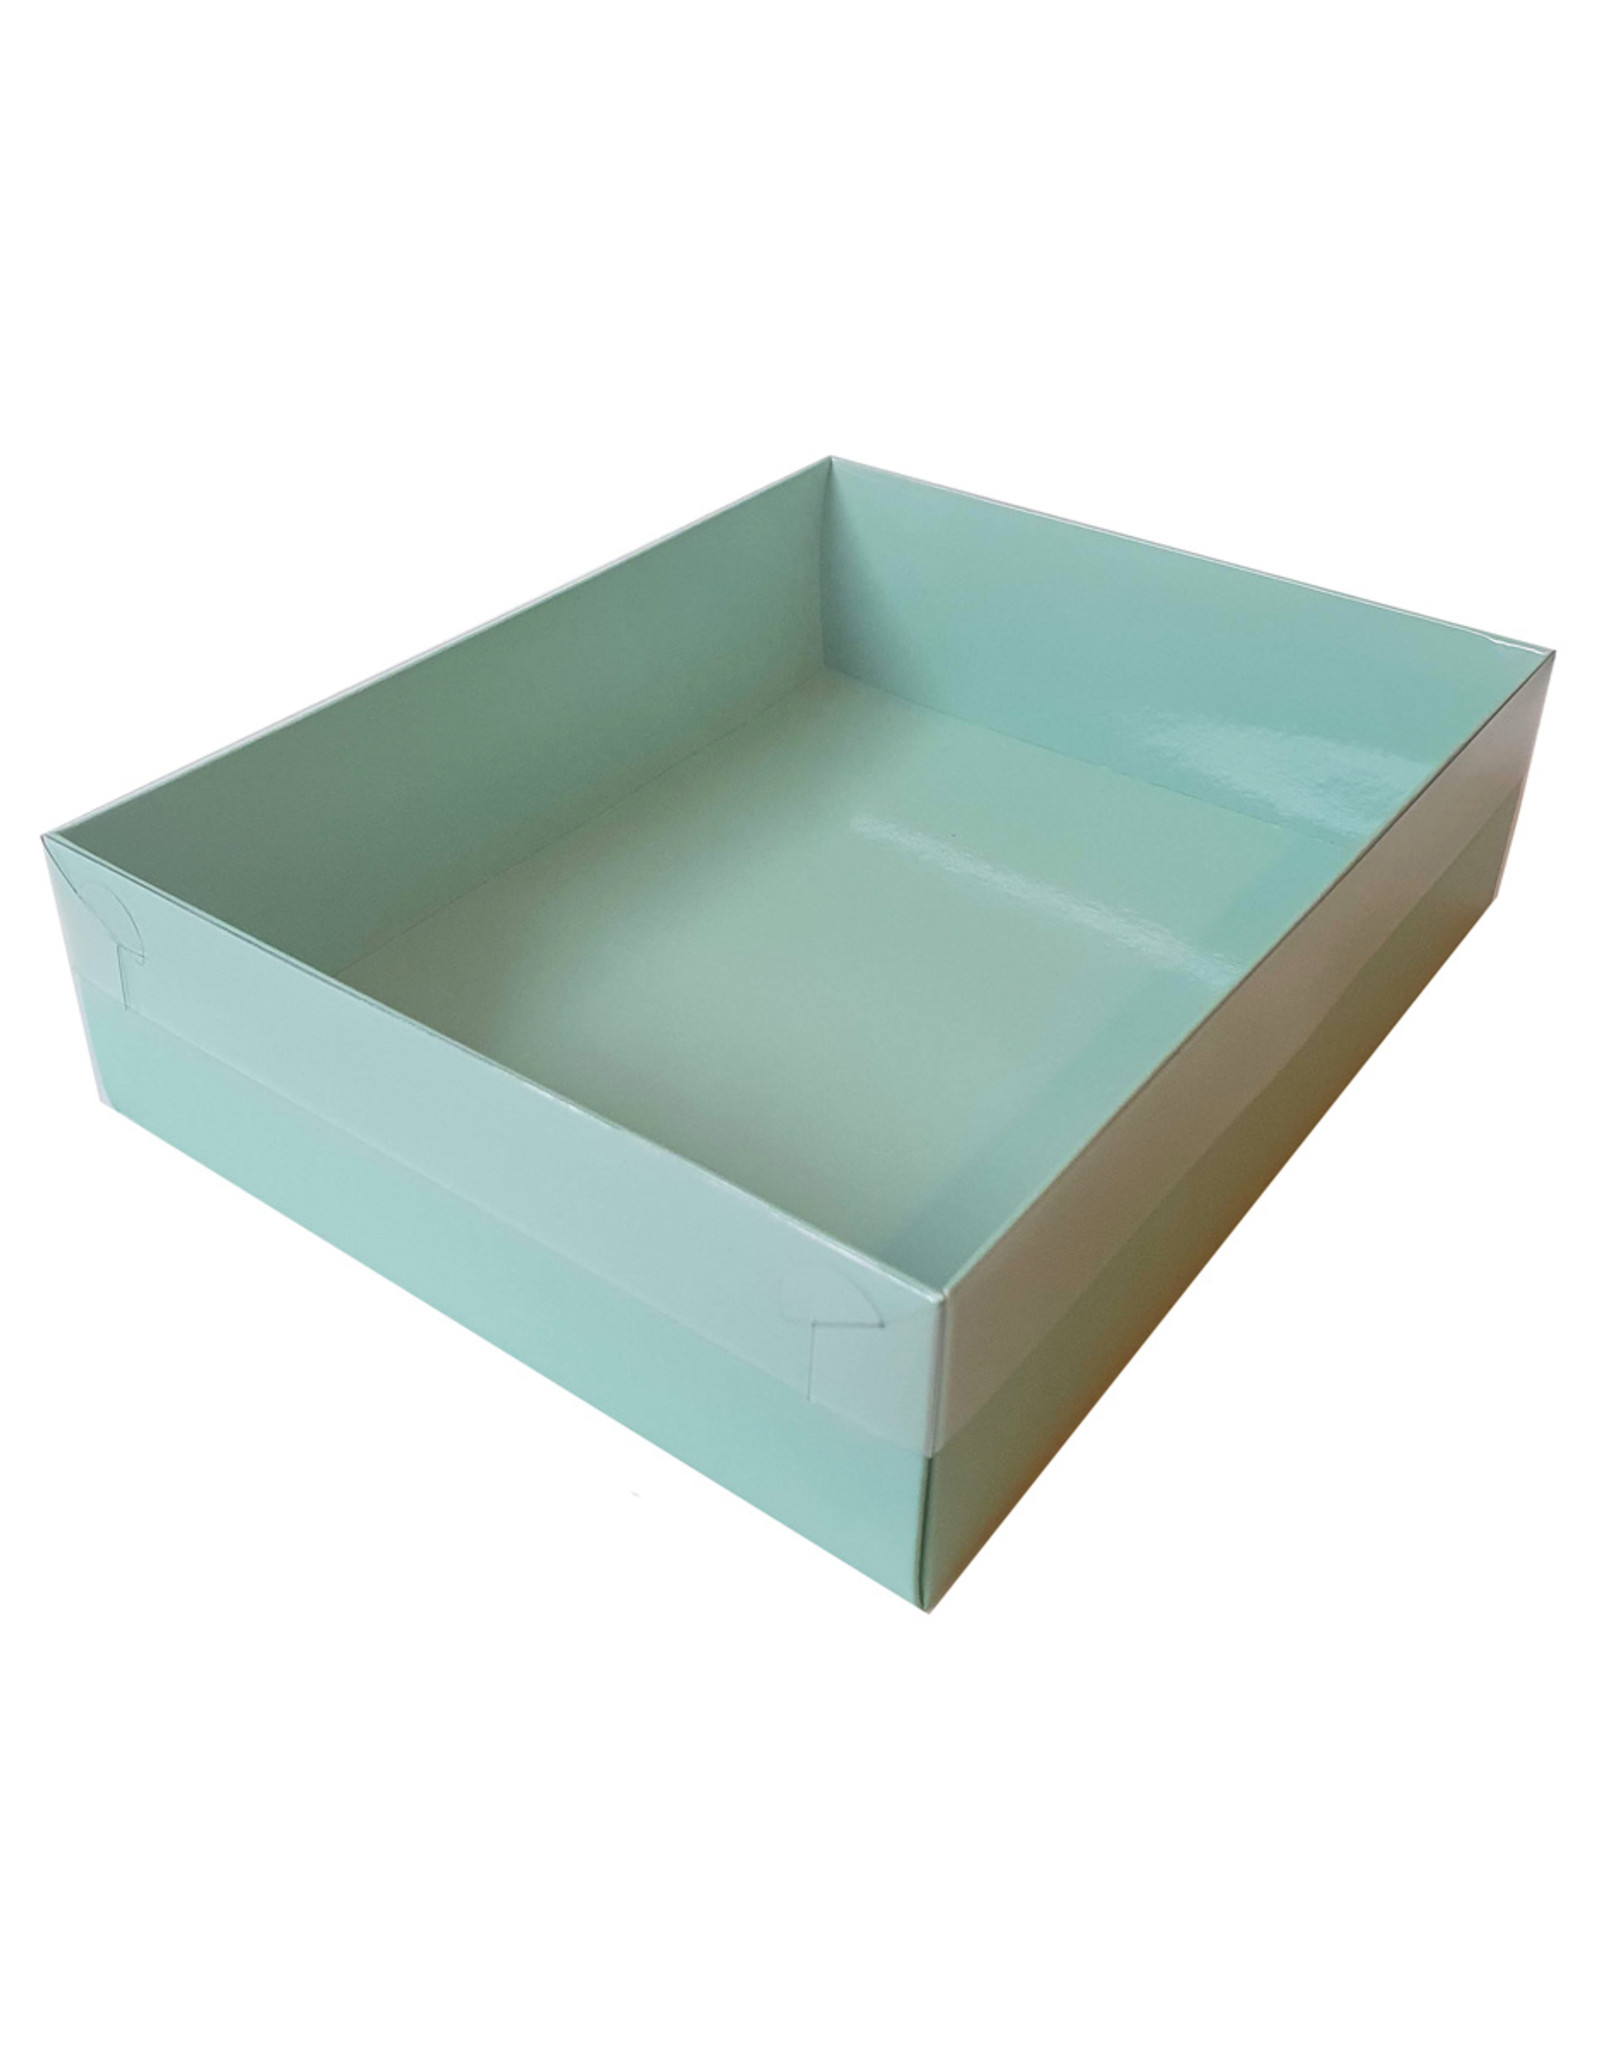 Mint sweets box with clear lid - 25 x 20 x 7 cm (per 50 pieces)